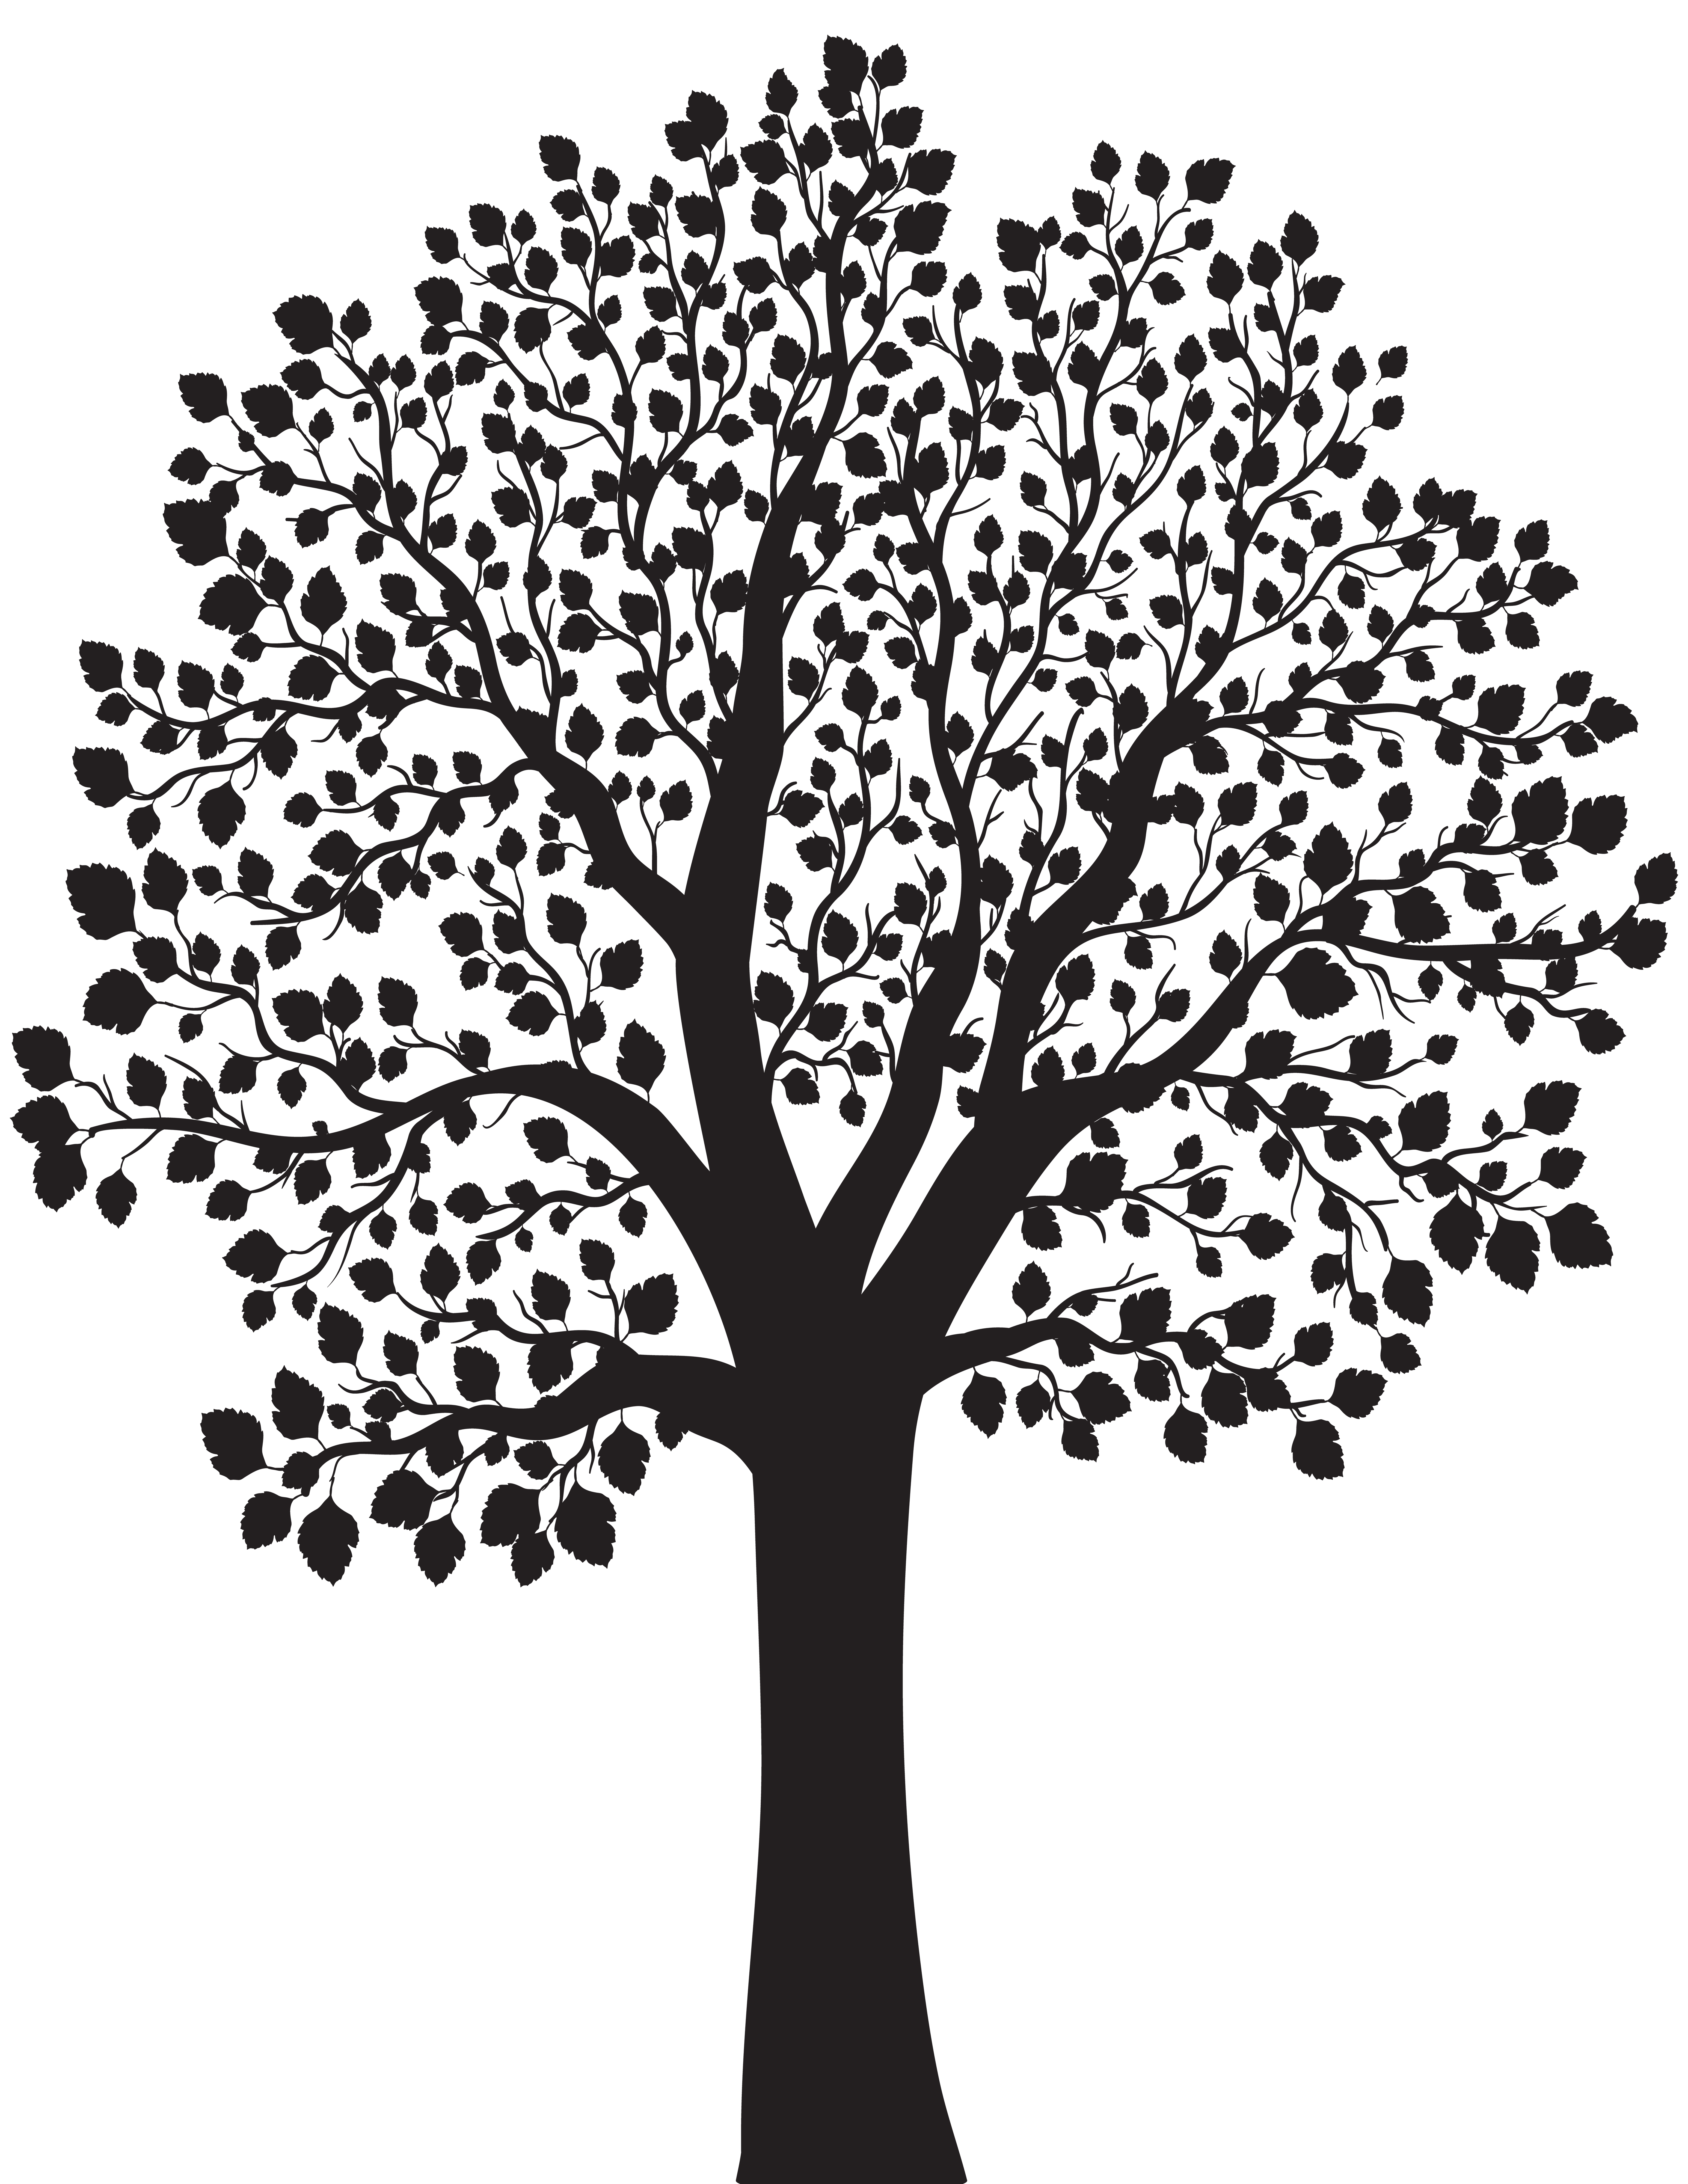 Tree silhouette png. Clip art image gallery